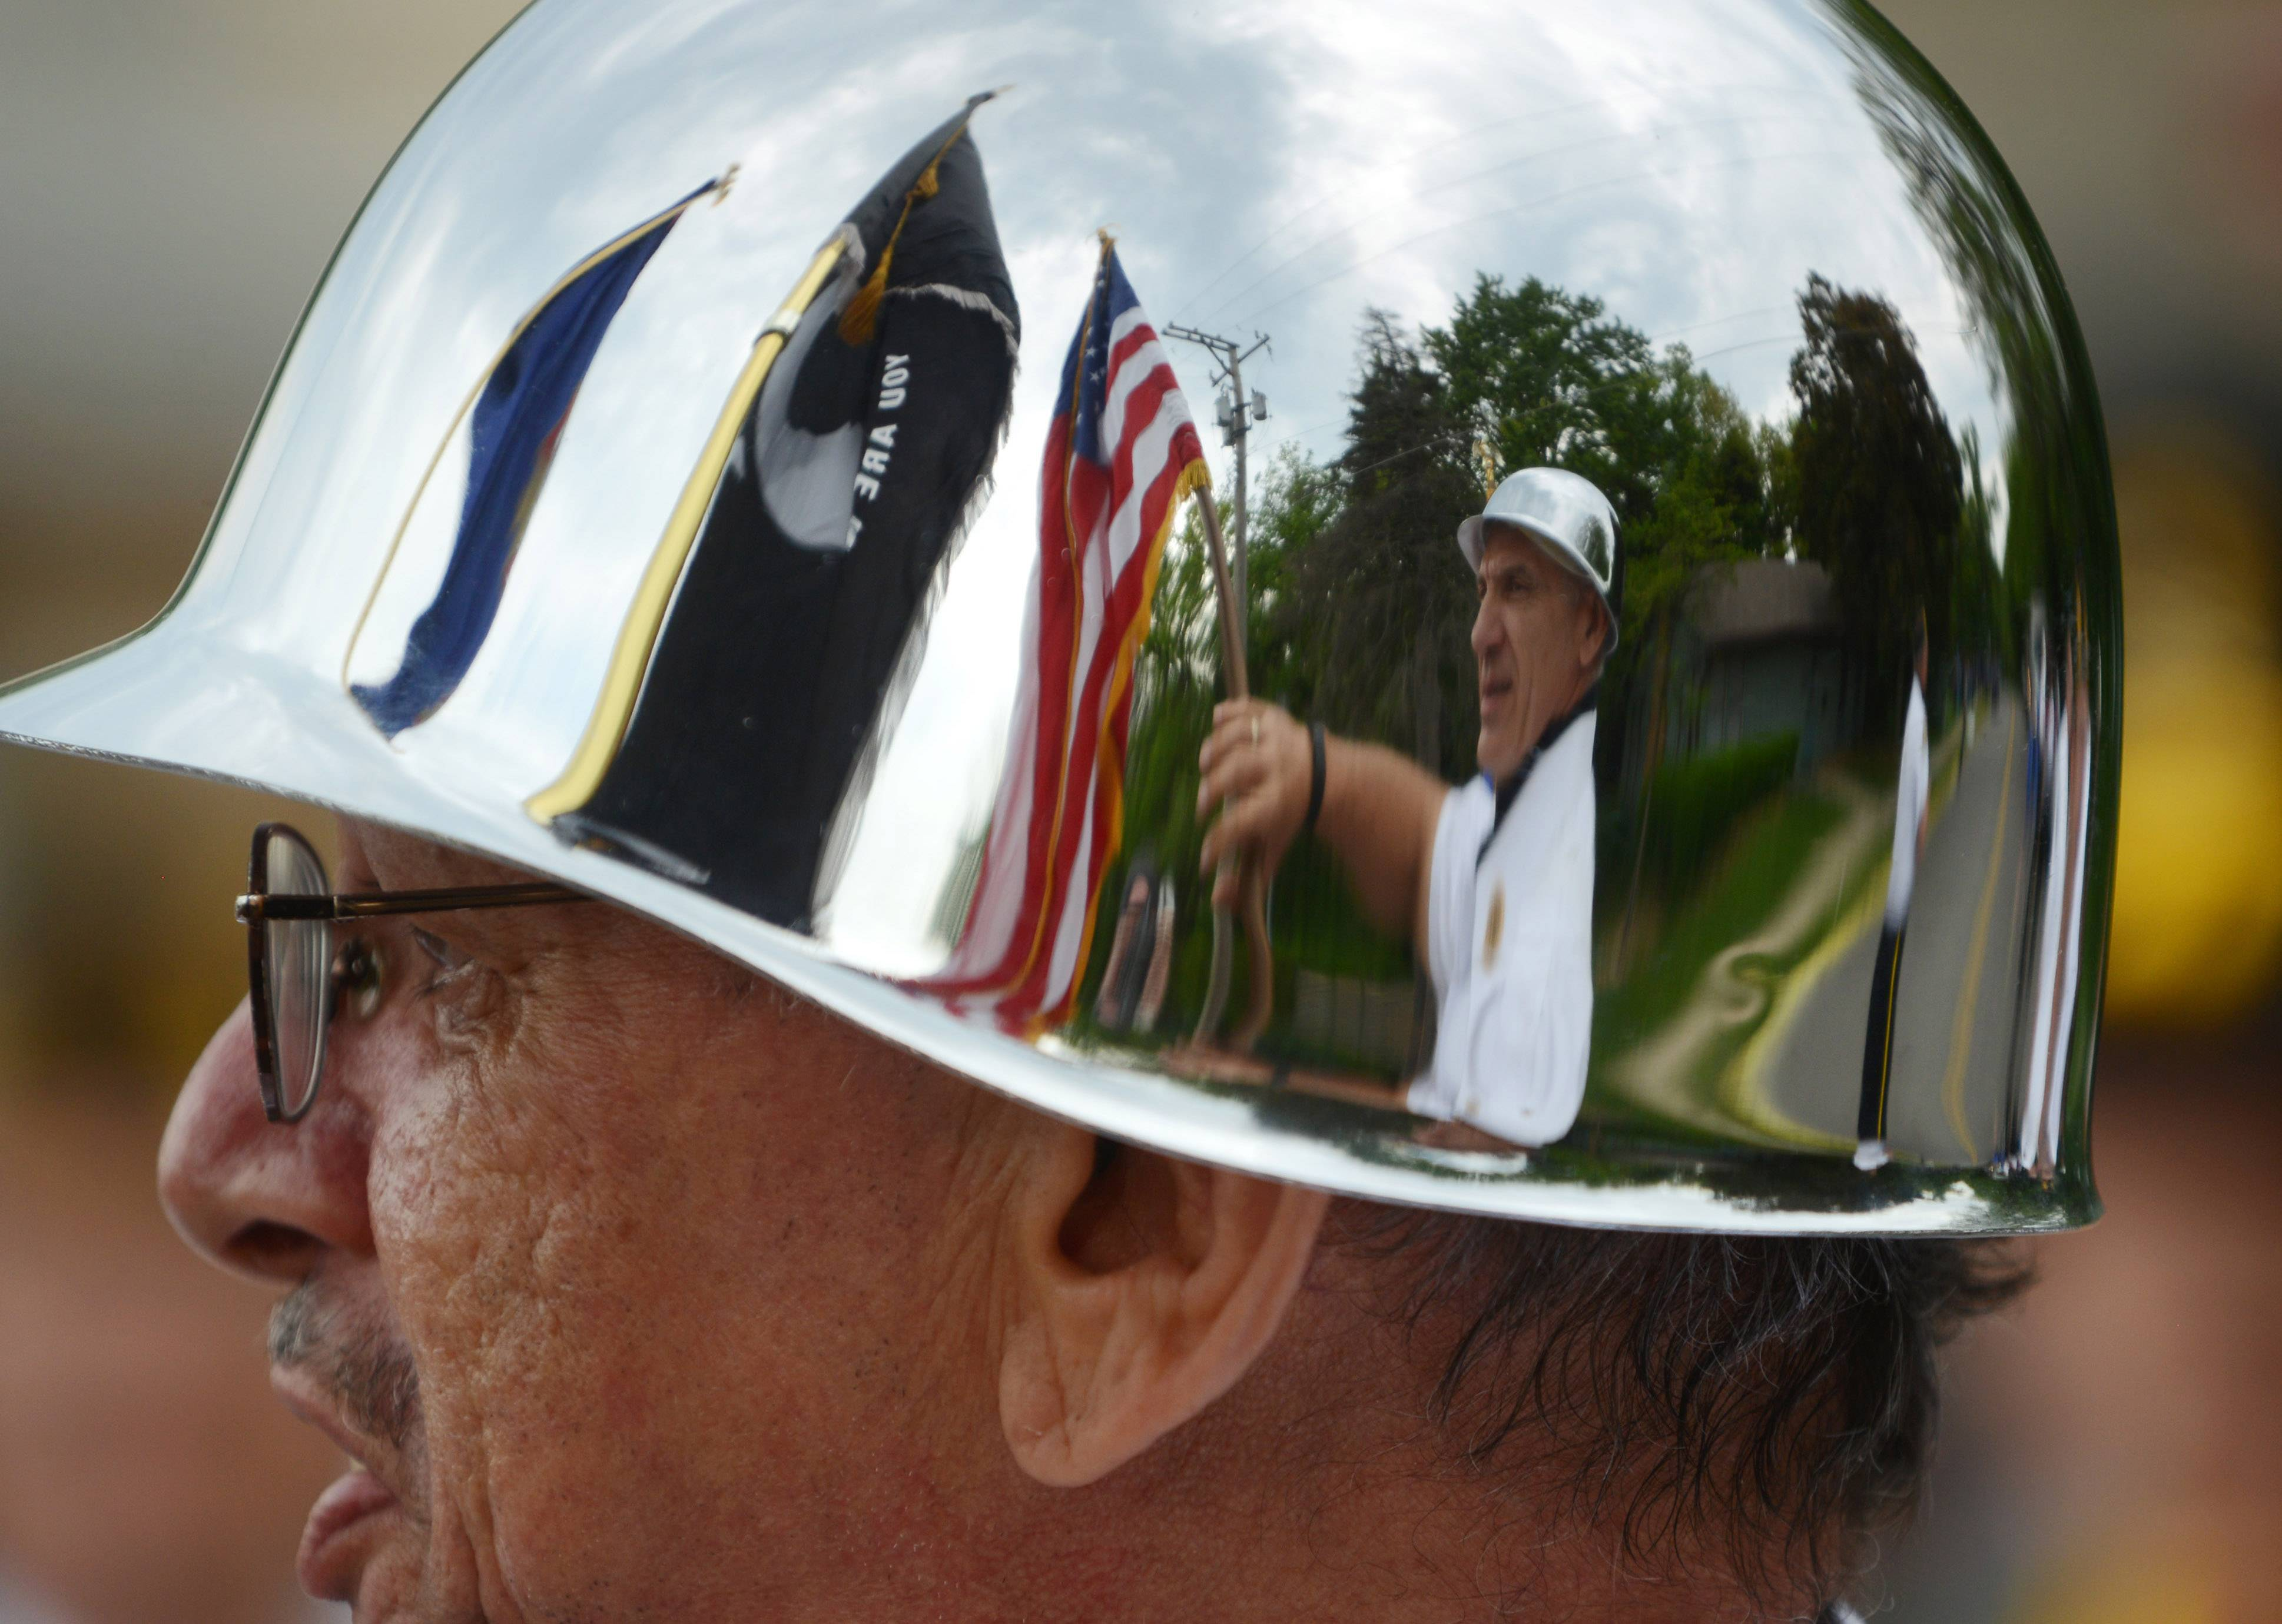 Lake Zurich American Legion Post 964 member Paul Carrubba carries the American flag and is reflected in the helmet of fellow post member Angel Lebron during Monday's Memorial Day parade in Lake Zurich.